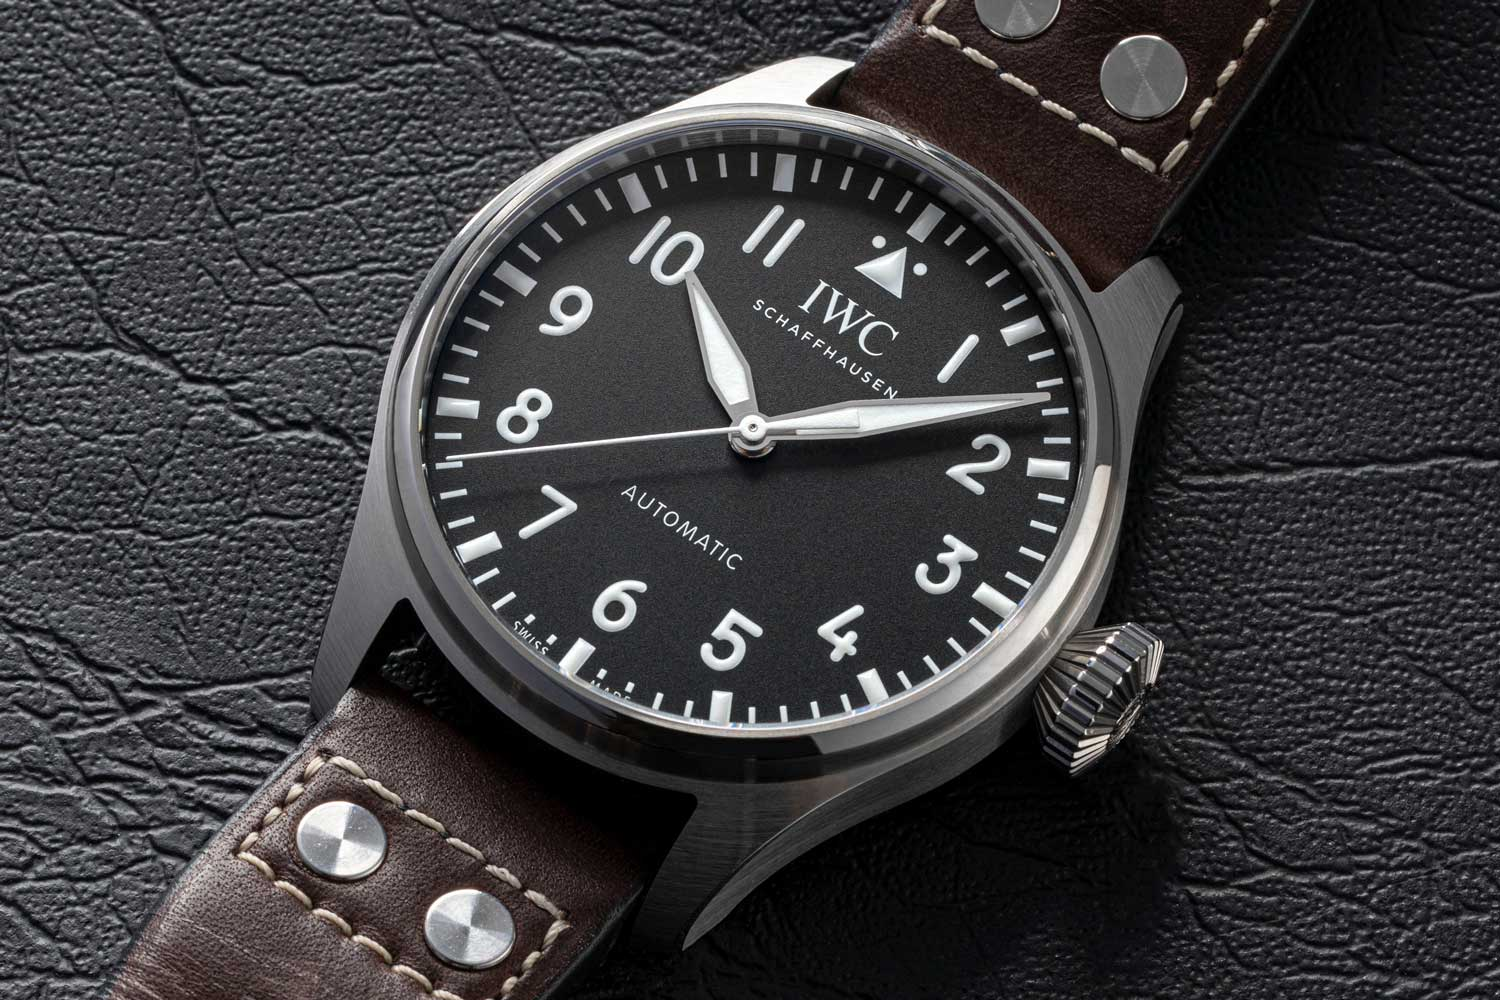 The Big Pilot's Watch 43 offers a few strap options in calf leather, rubber and stainless steel. (©Revolution)